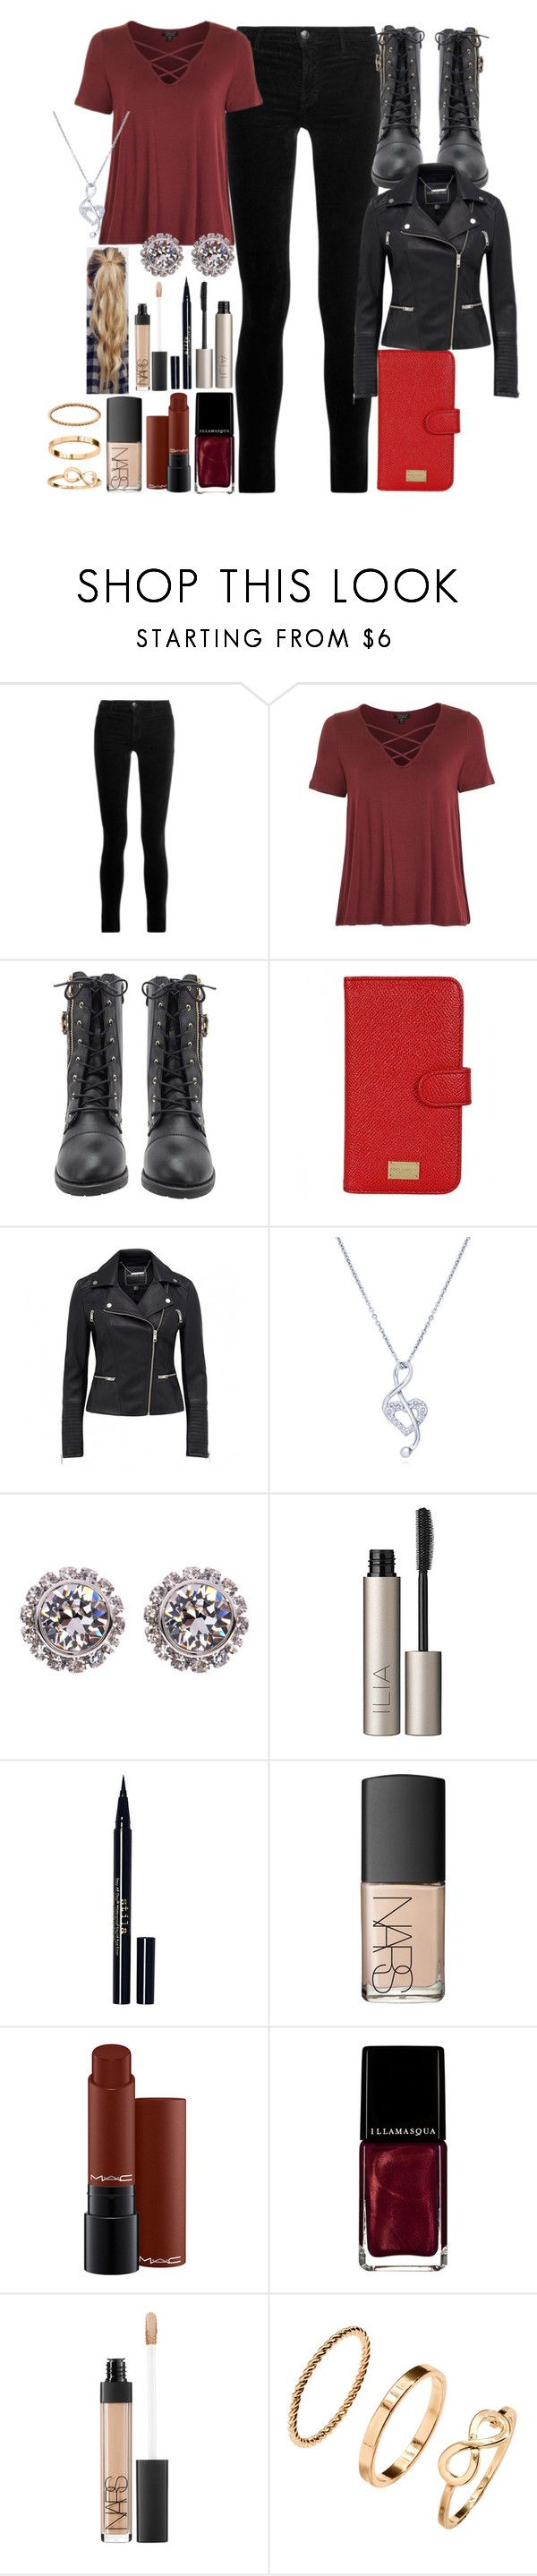 """No1 OC Hunter-Outfit 1"" by nattiexo ❤ liked on Polyvore featuring J Brand, Topshop, Dolce&Gabbana, BERRICLE, Ted Baker, Ilia, Stila, NARS Cosmetics, MAC Cosmetics and Illamasqua"